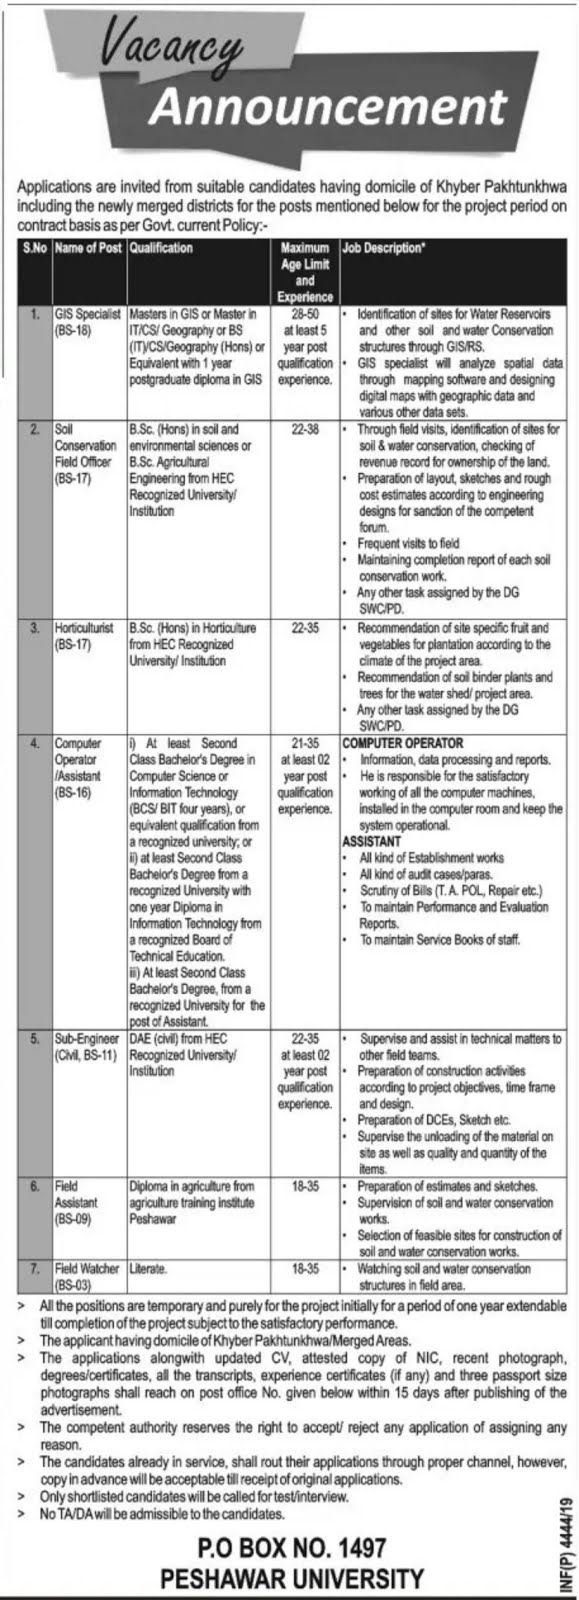 PO Box 1497 Peshawar University Jobs 2019